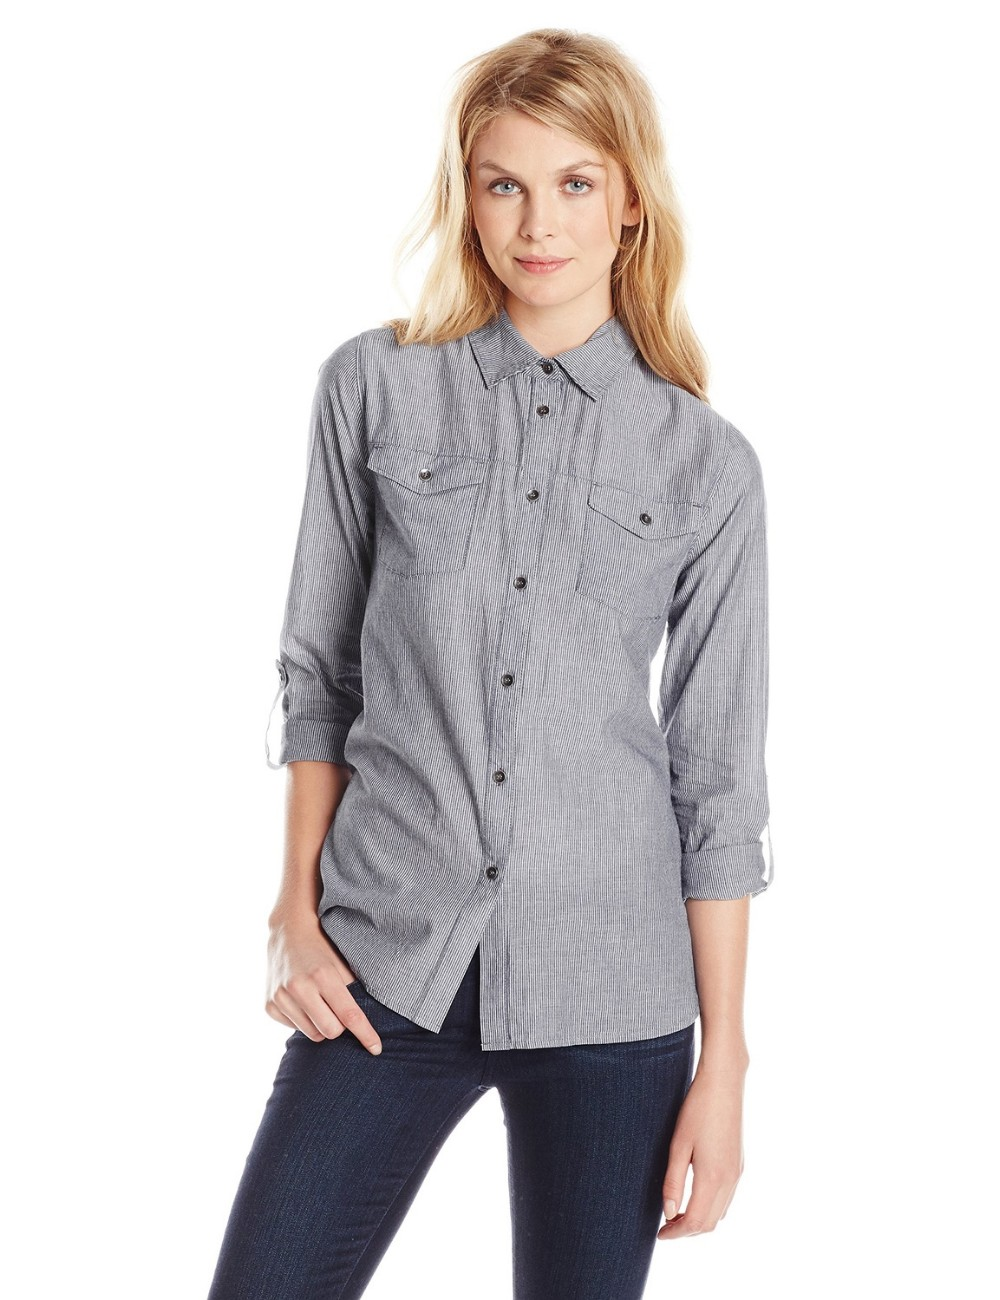 100% cotton stripe women's long sleeve shirt